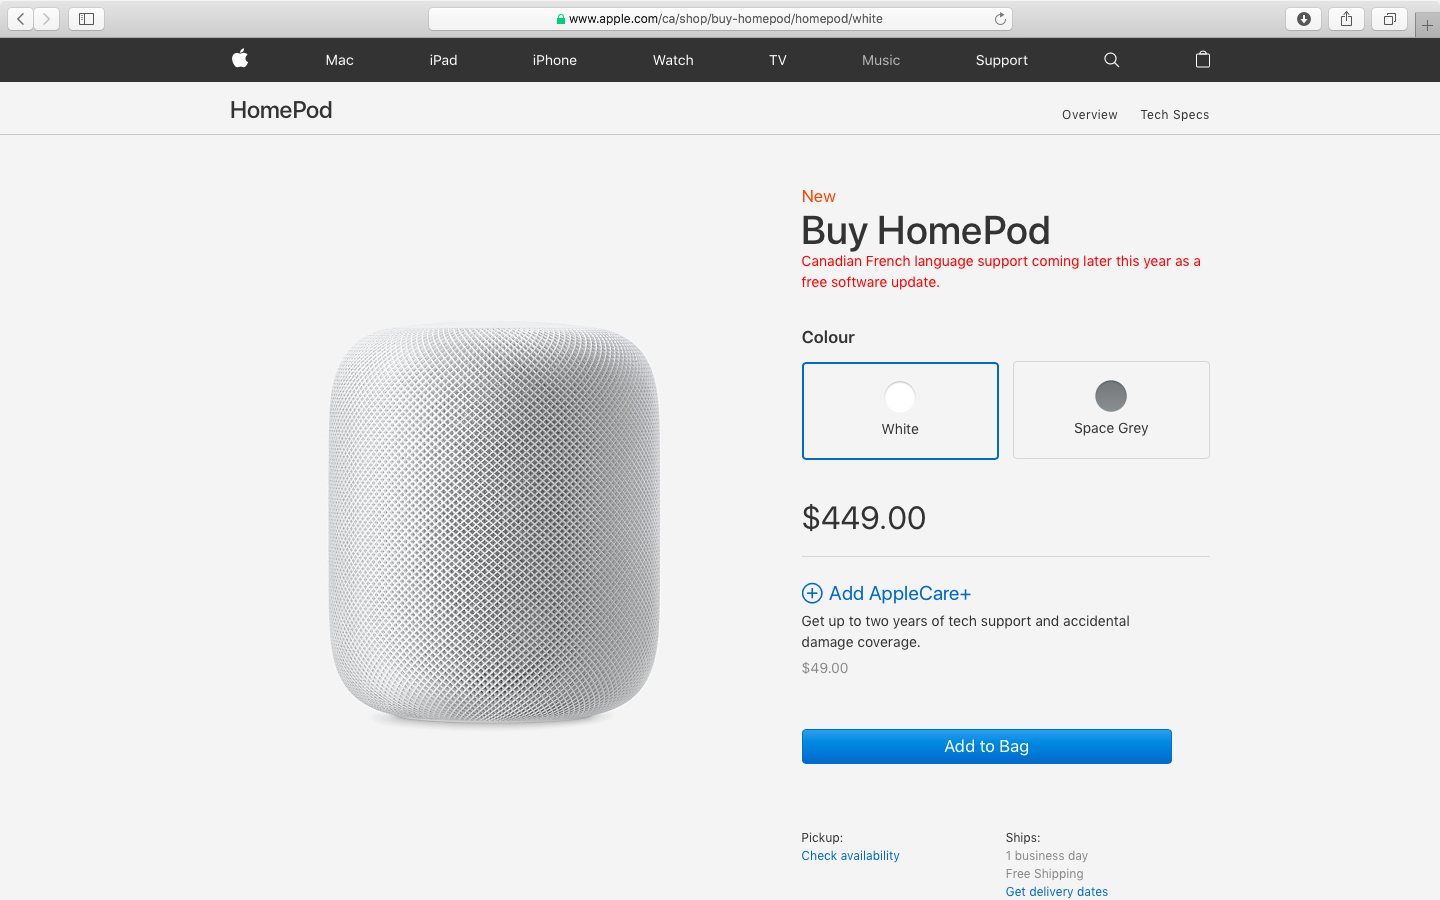 The Buy HomePod webpage in Canada notes that Canadian French language supports coming later this year as a free software update